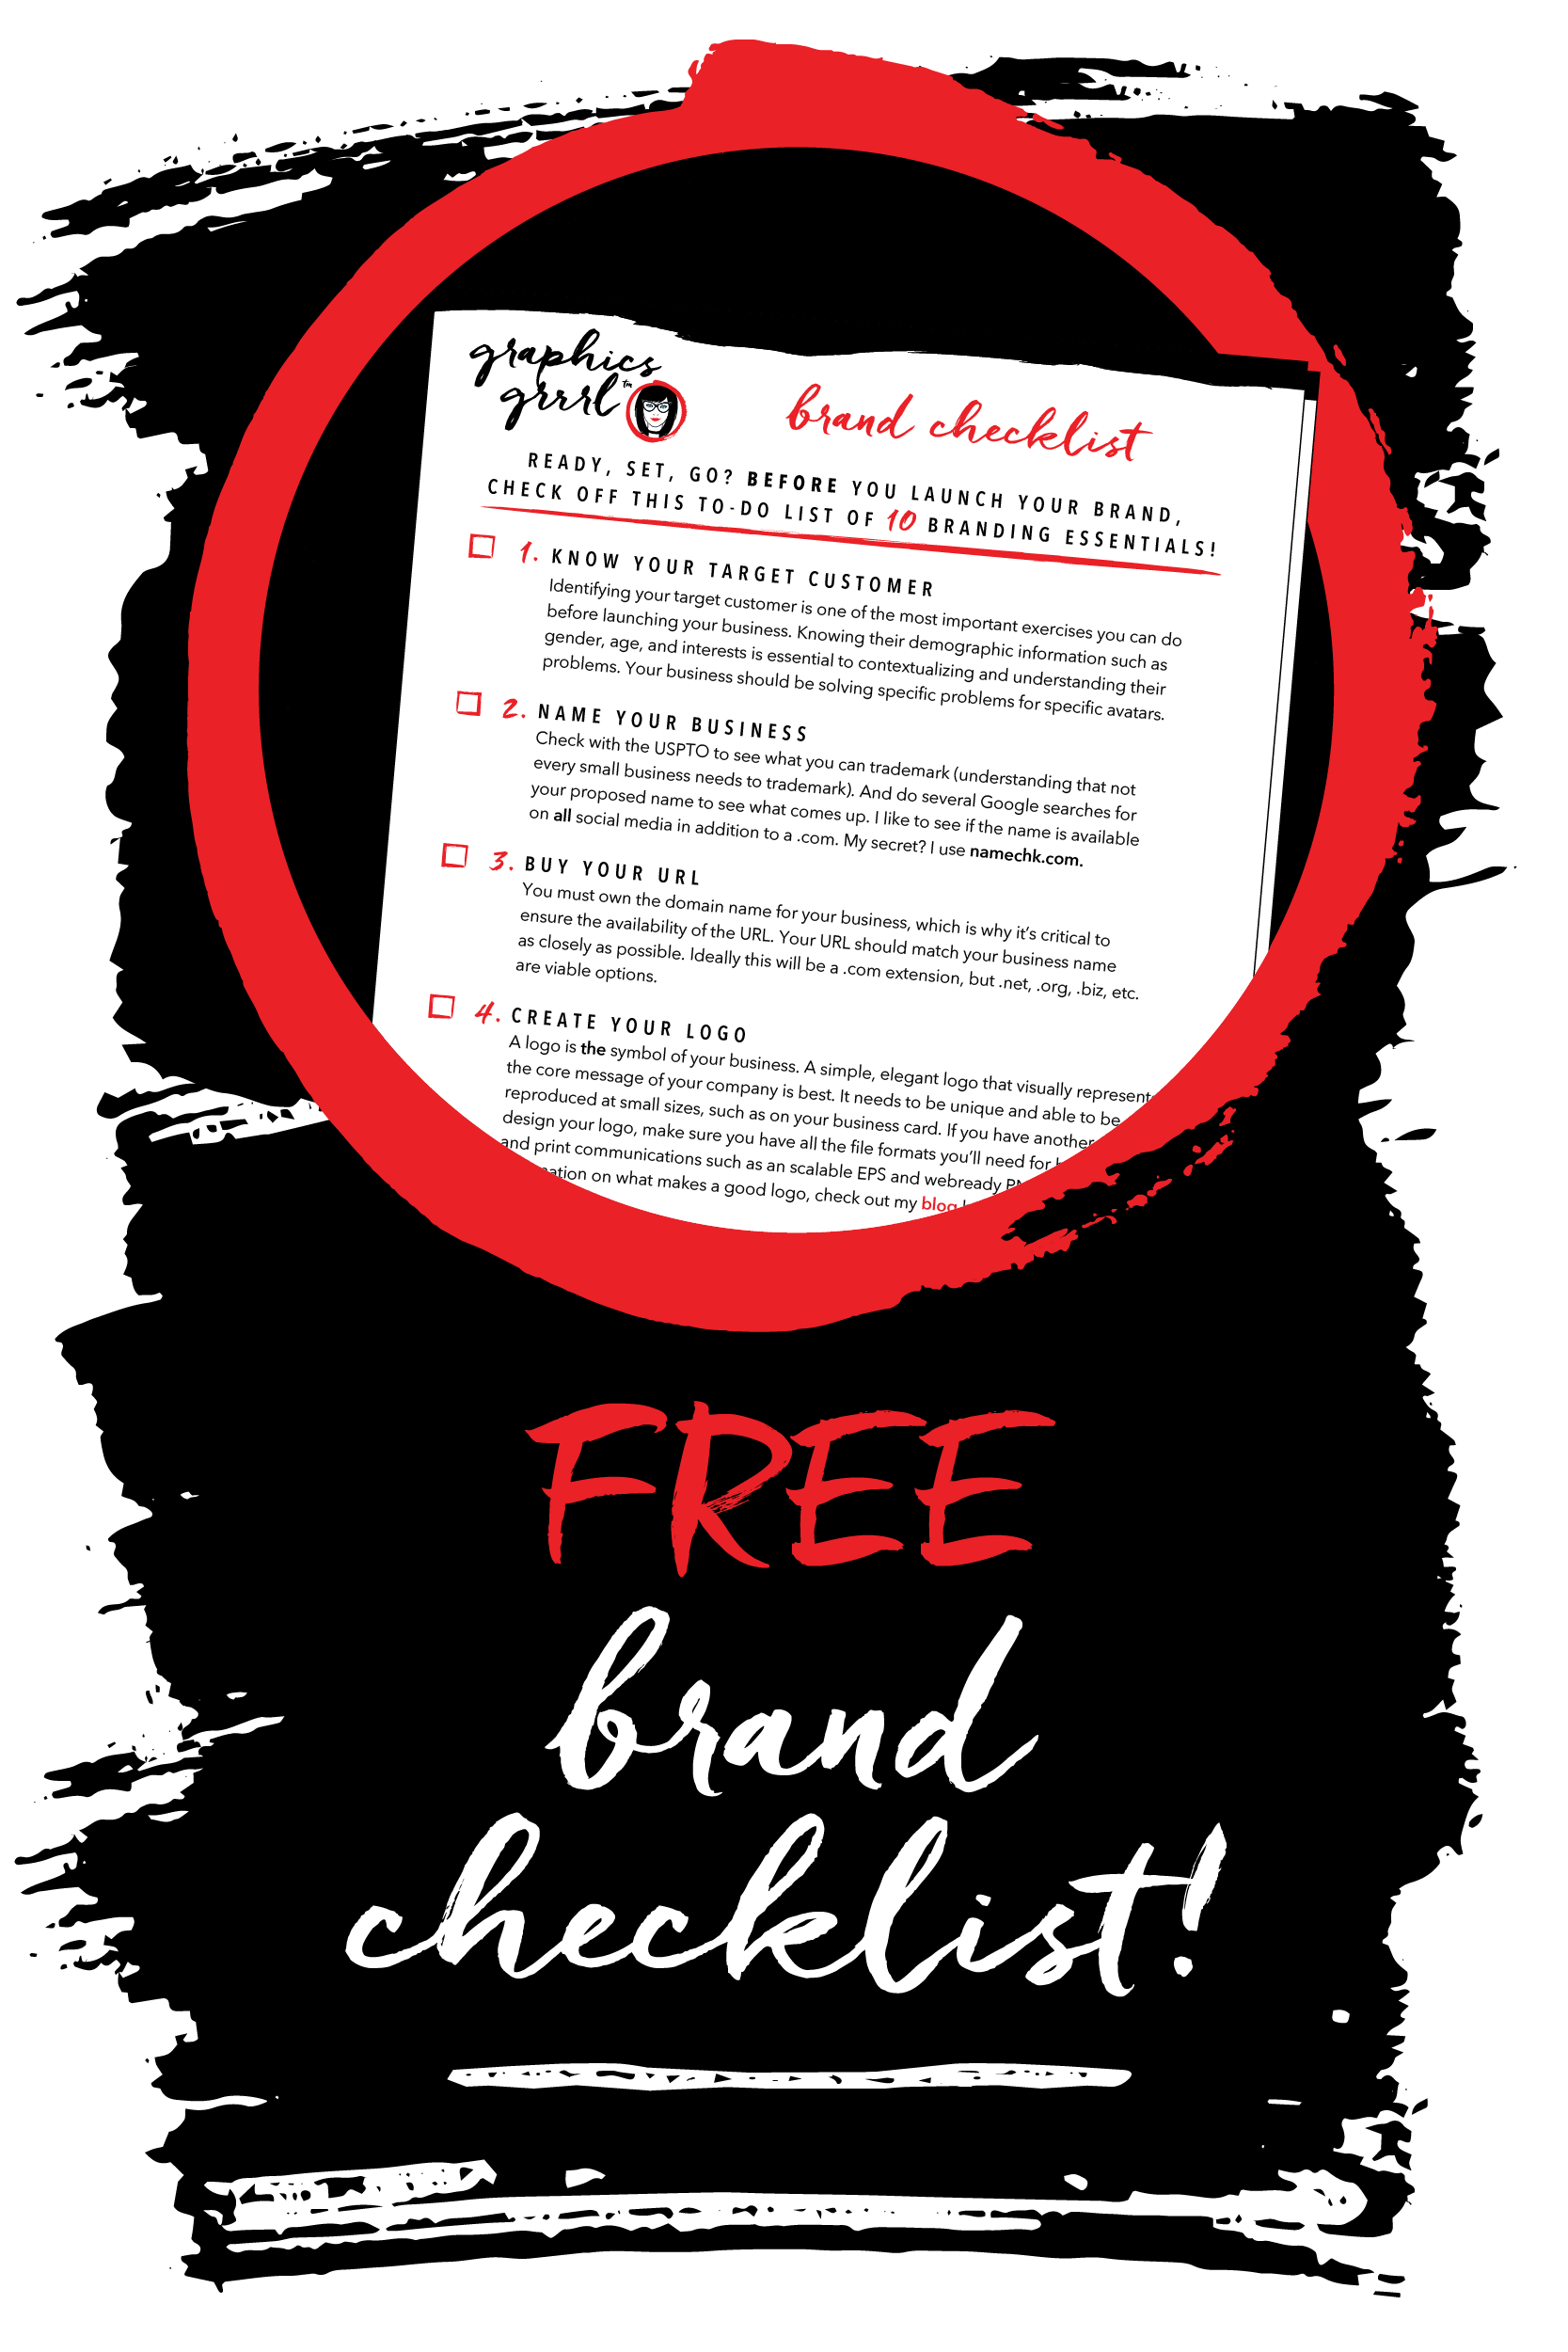 trim, bleed & safety! Click through to get your FREE 10-point brand checklist with everything you need to before launching your brand!~graphics grrrl